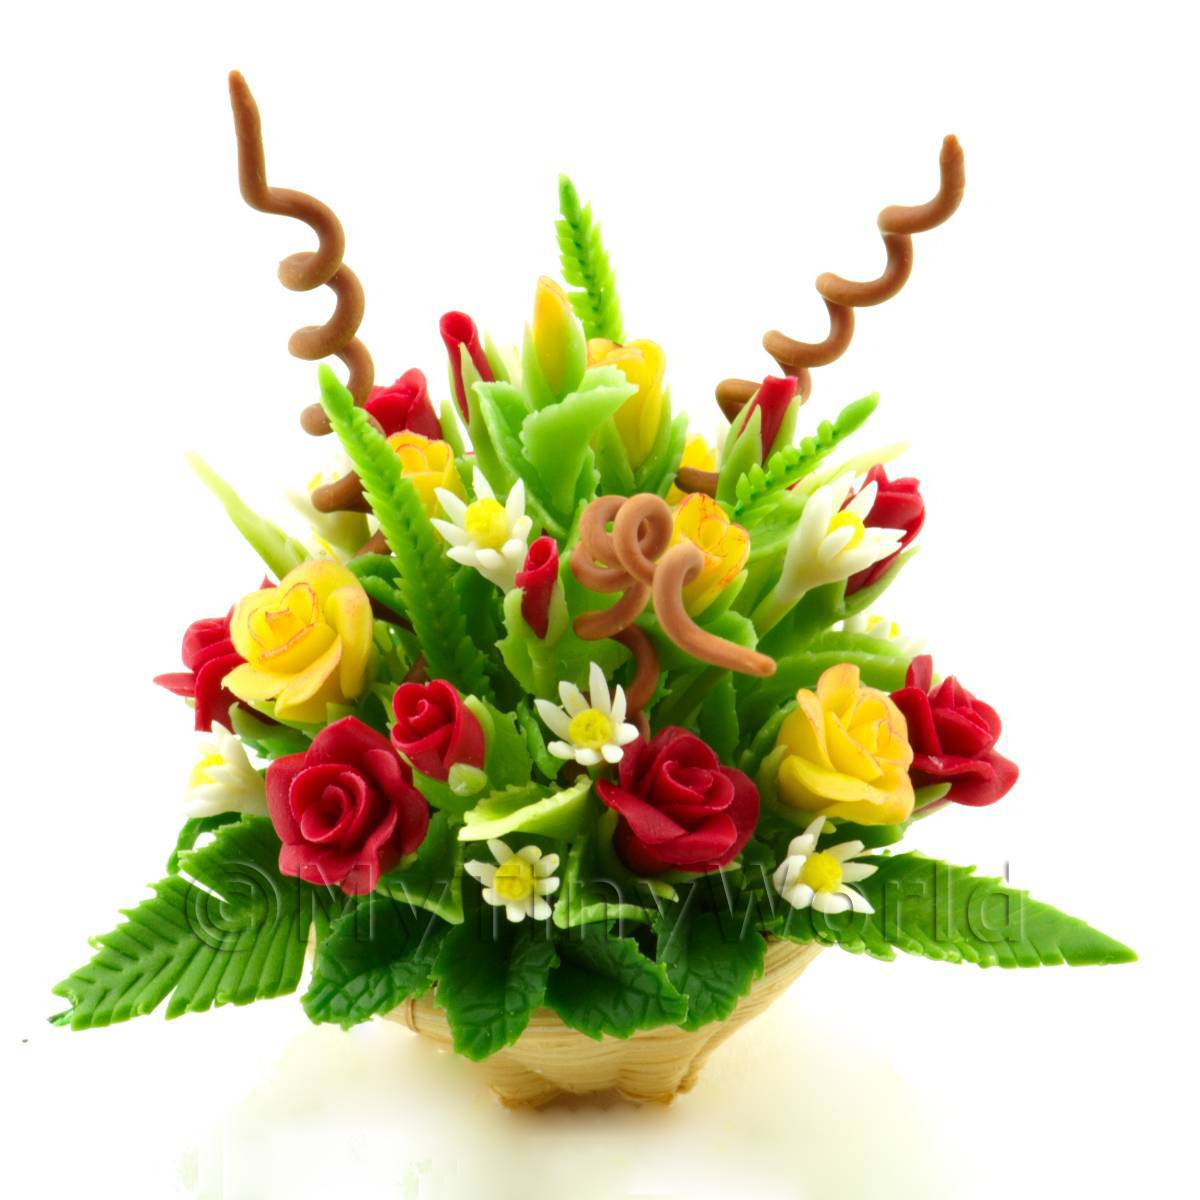 Flowers Bouquet Png Transparent Comousar